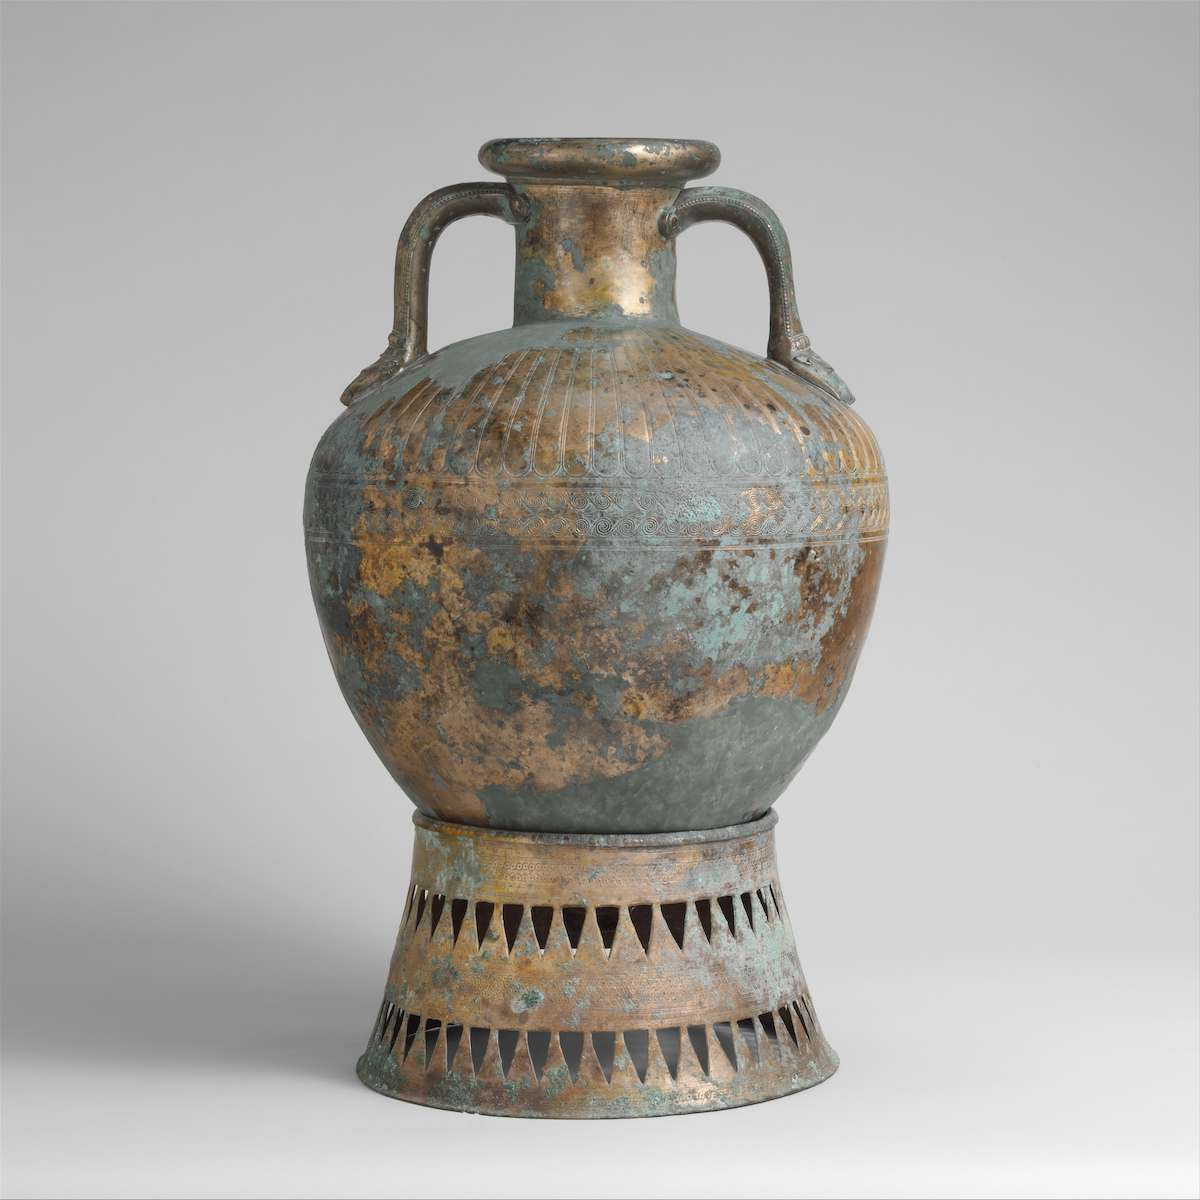 native american pottery wedding vase of toward the derveni krater artistry in bronze with fig 26 03 gaunt